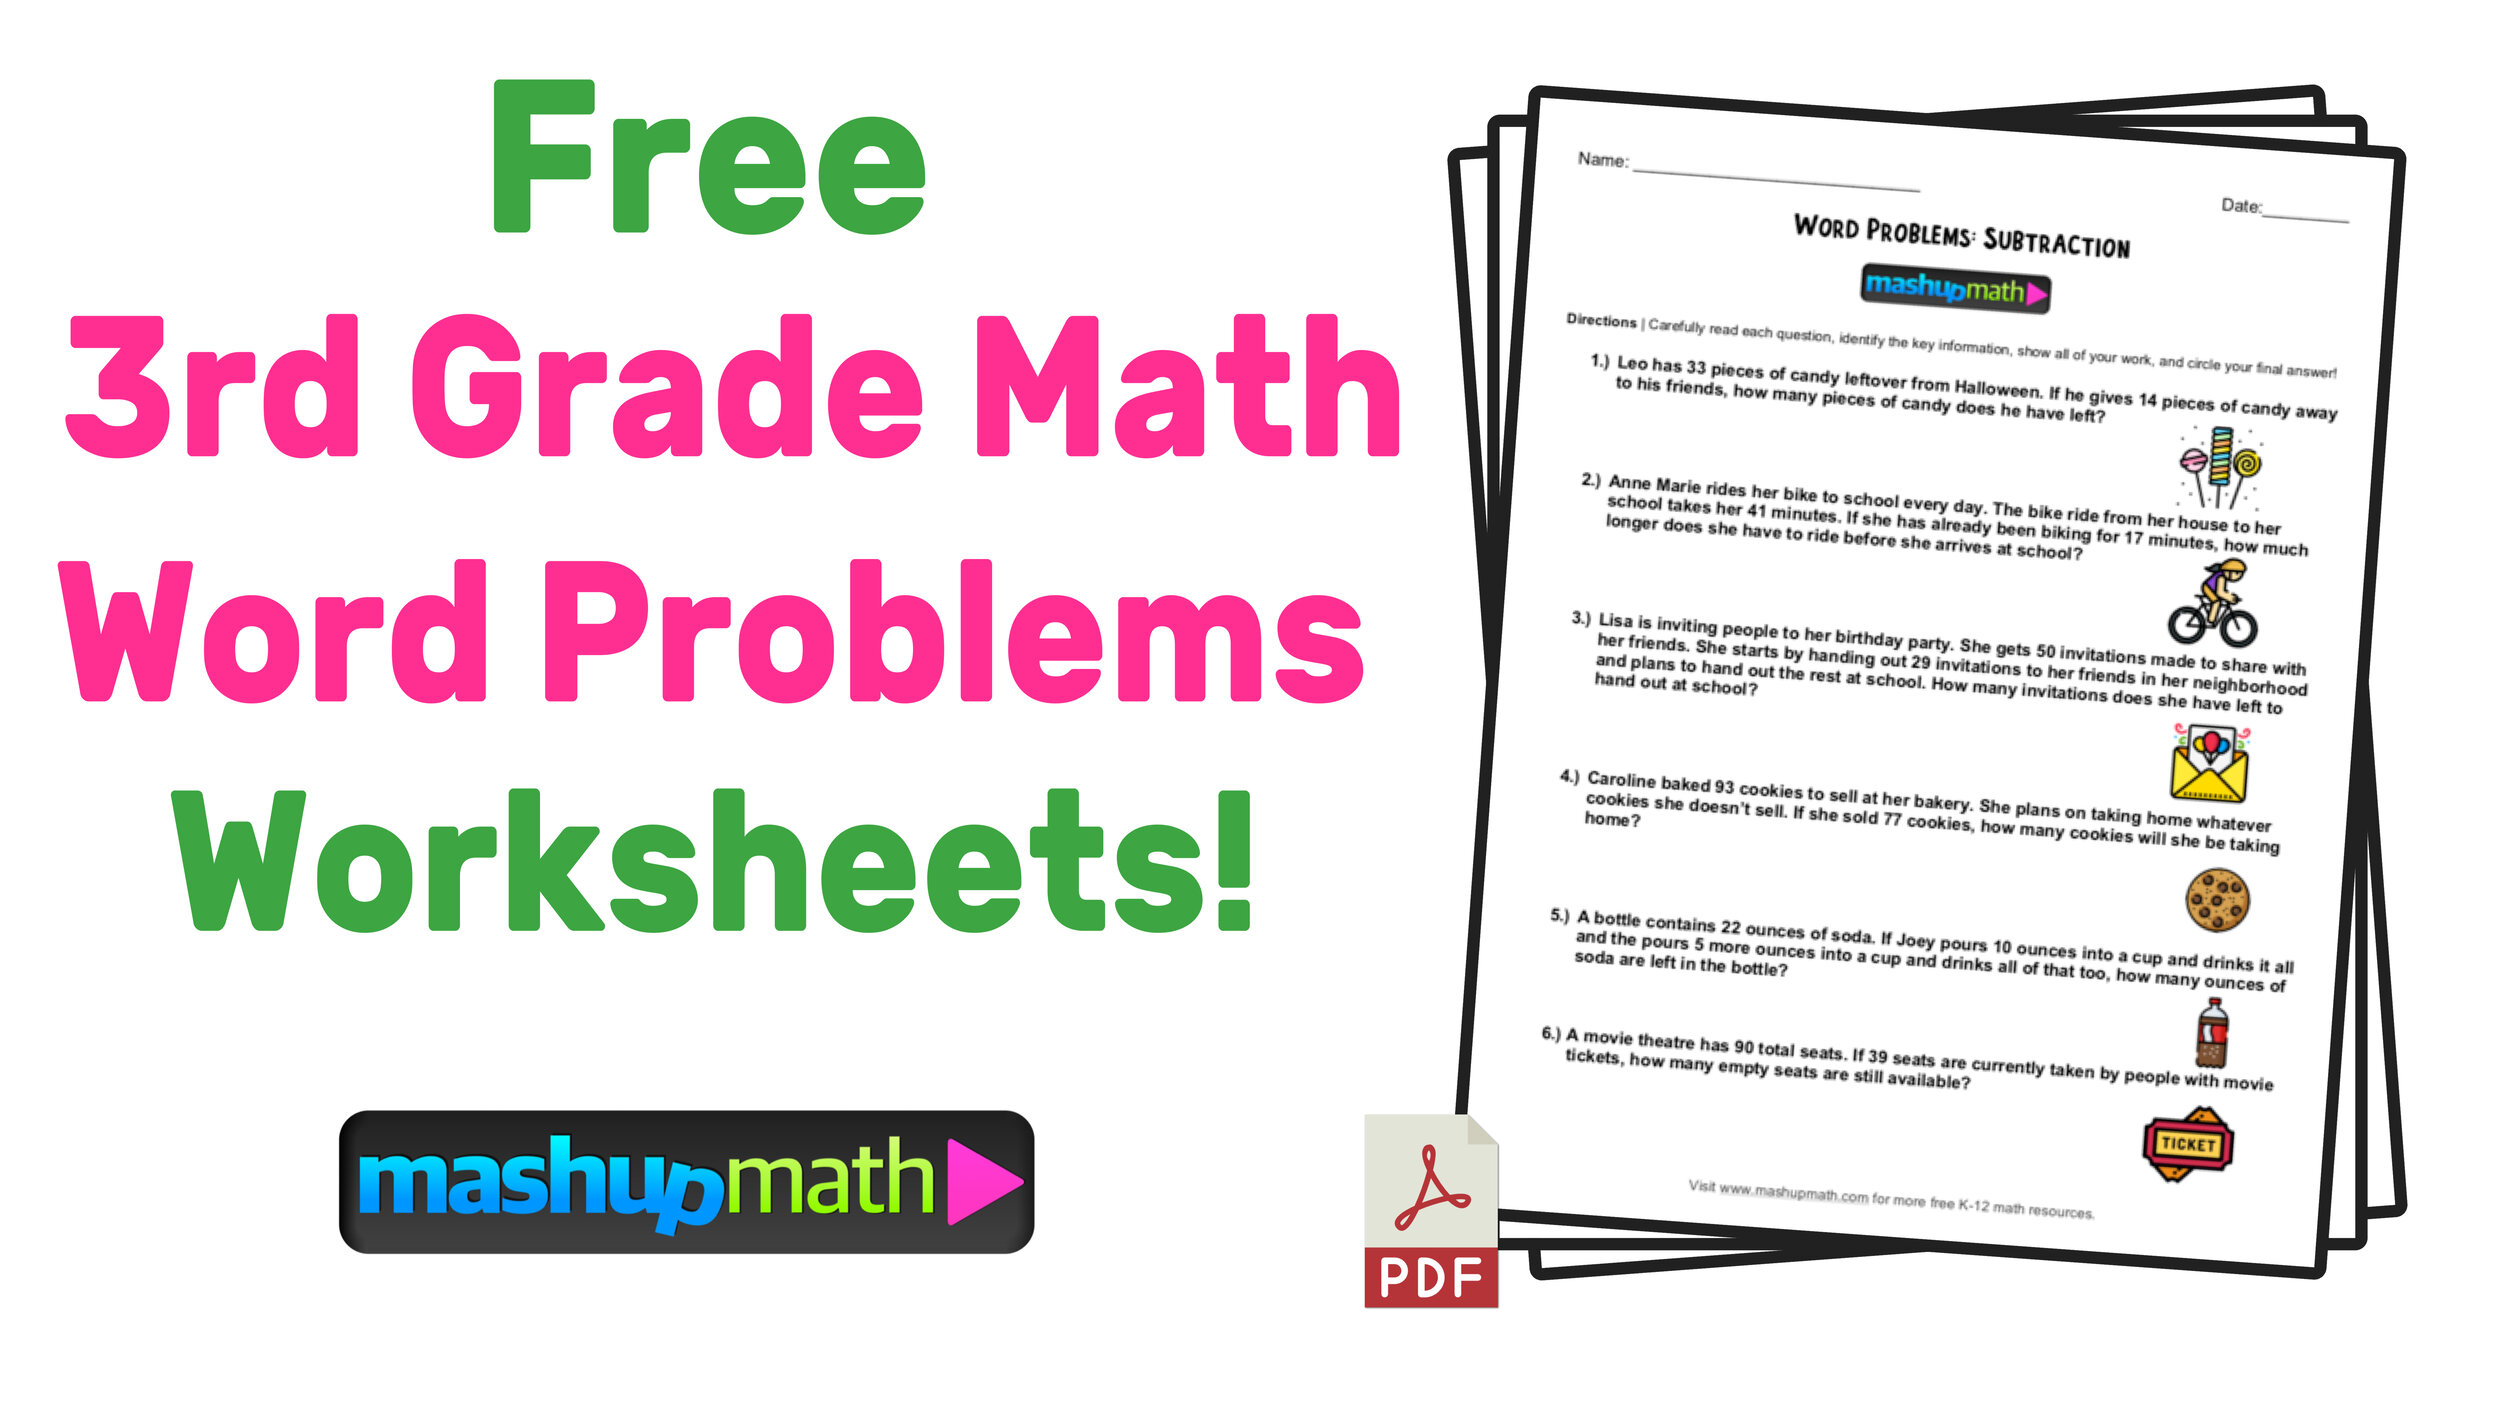 3rd Grade Math Word Problems: Free Worksheets With Answers — Mashup Math